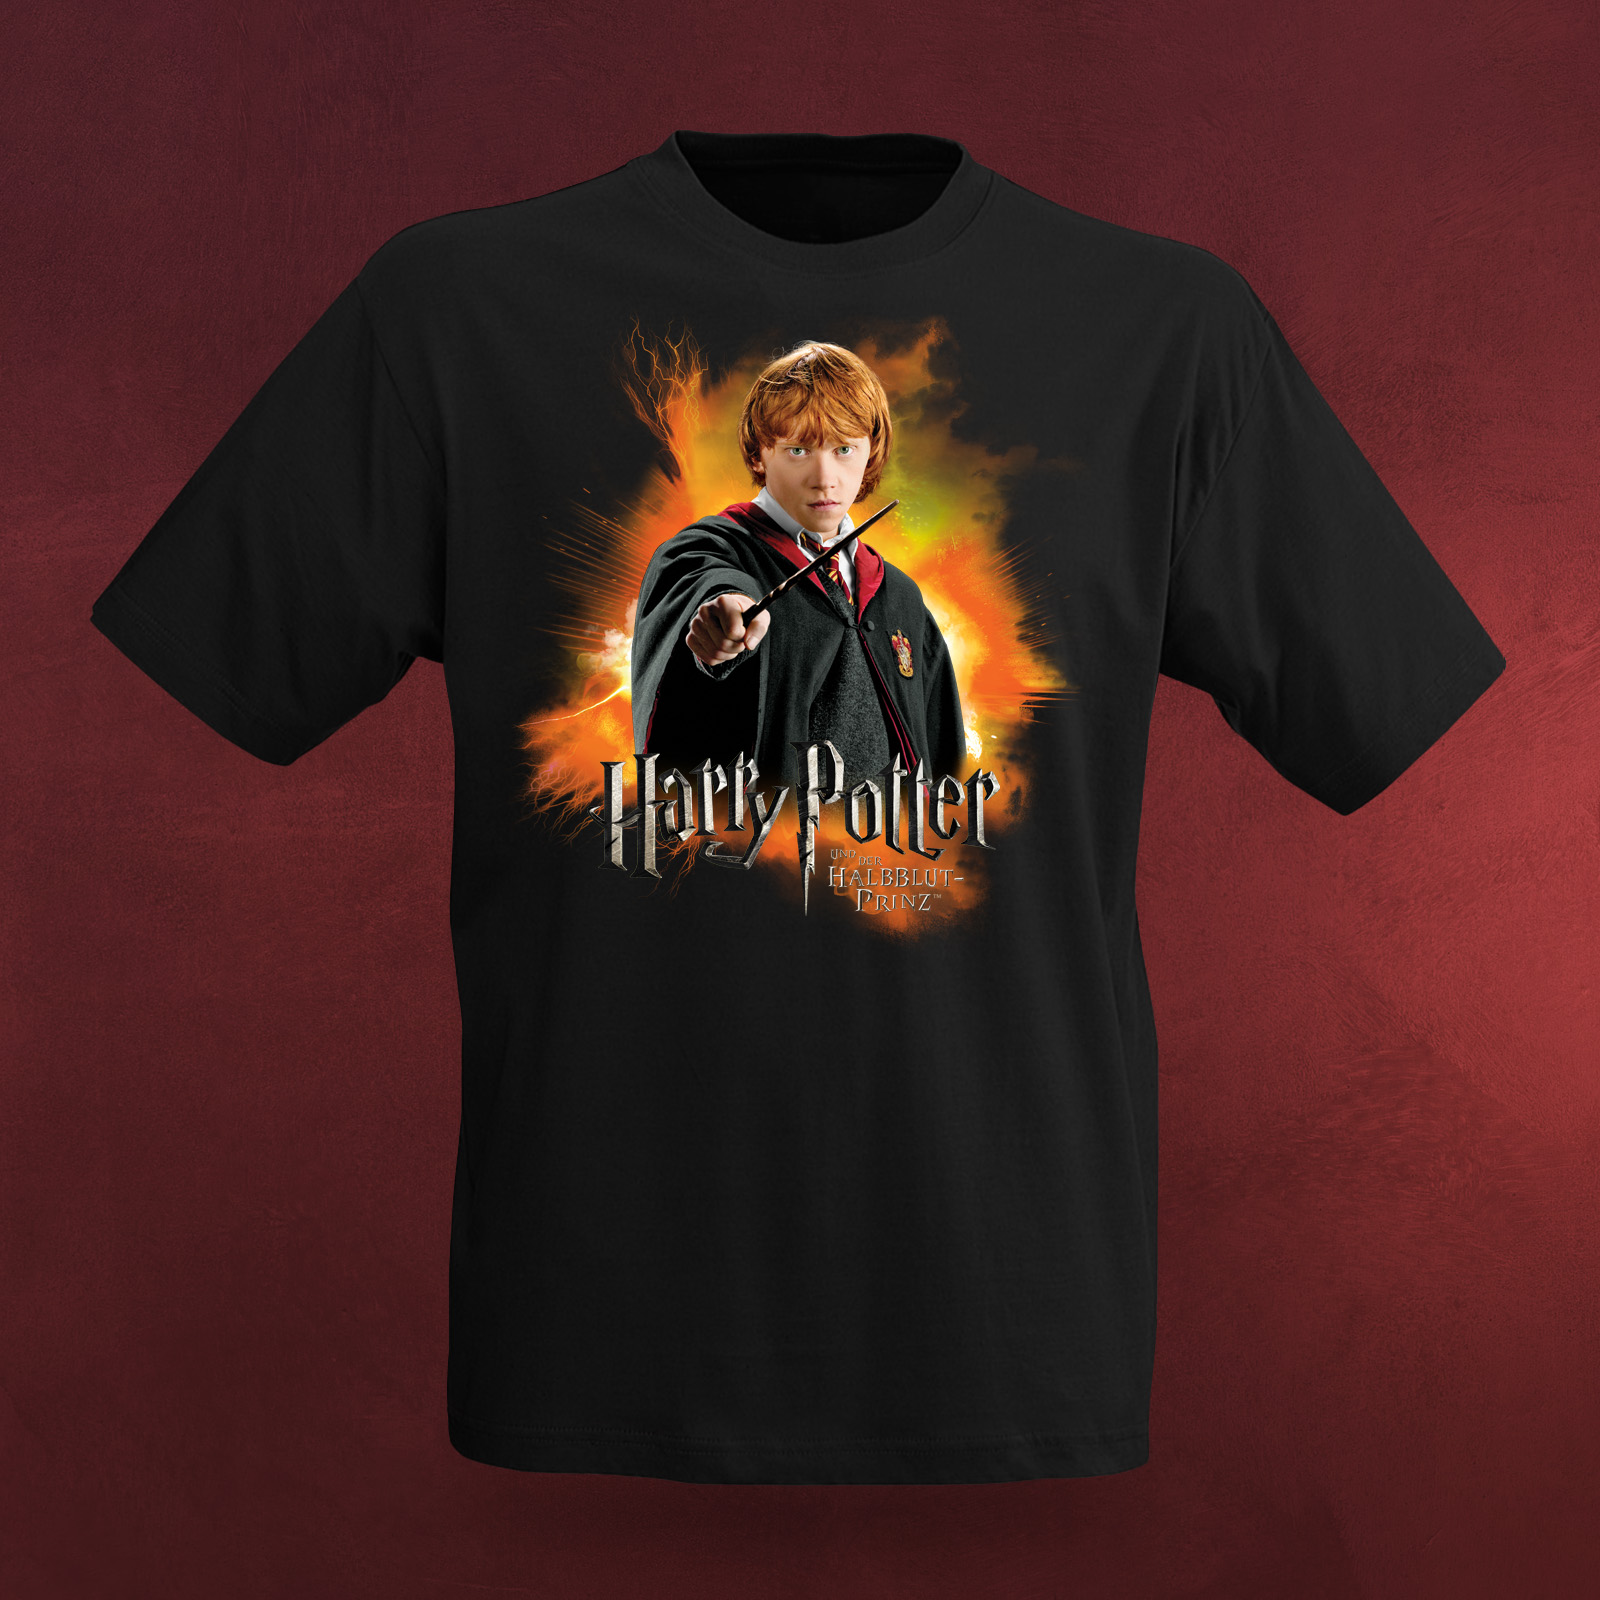 harry potter ron weasley t shirt. Black Bedroom Furniture Sets. Home Design Ideas